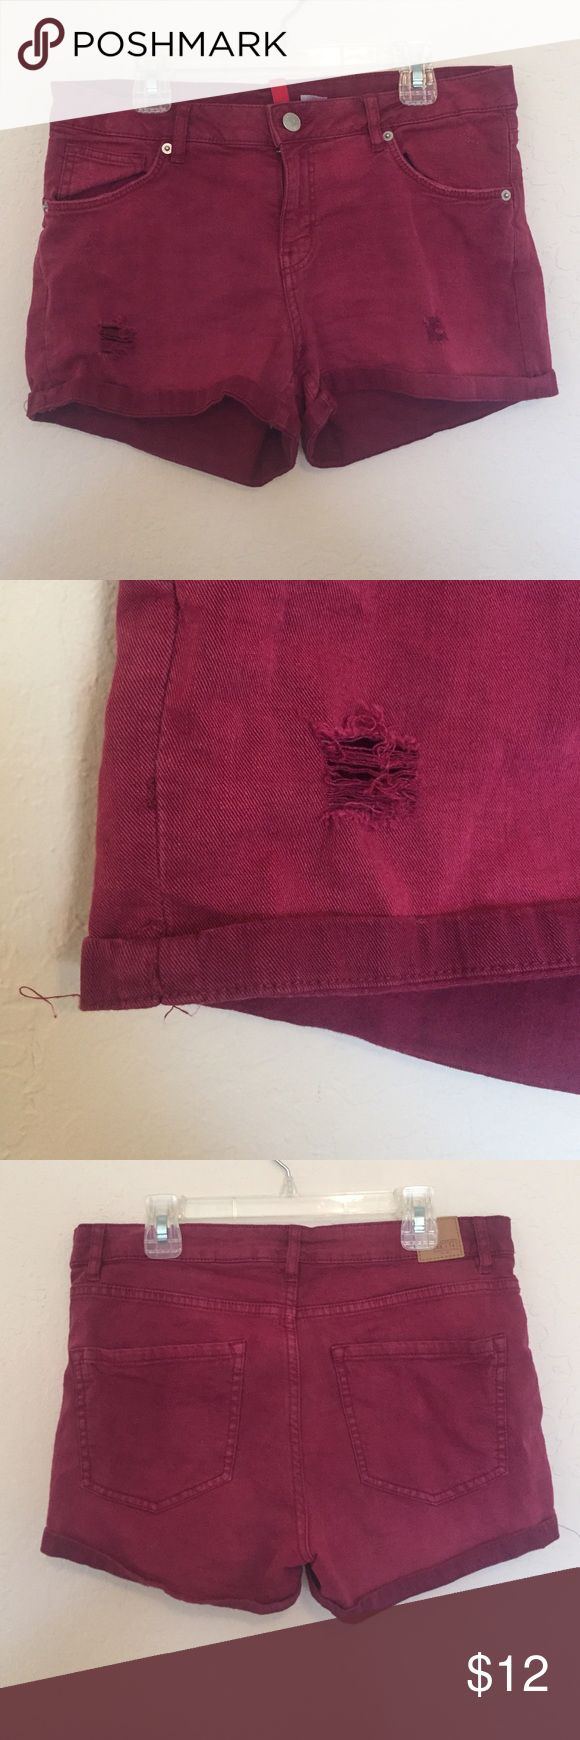 Maroon distressed denim shorts. Maroon shorts, distressed on front, lightly worn, from H&M. H&M Shorts Jean Shorts